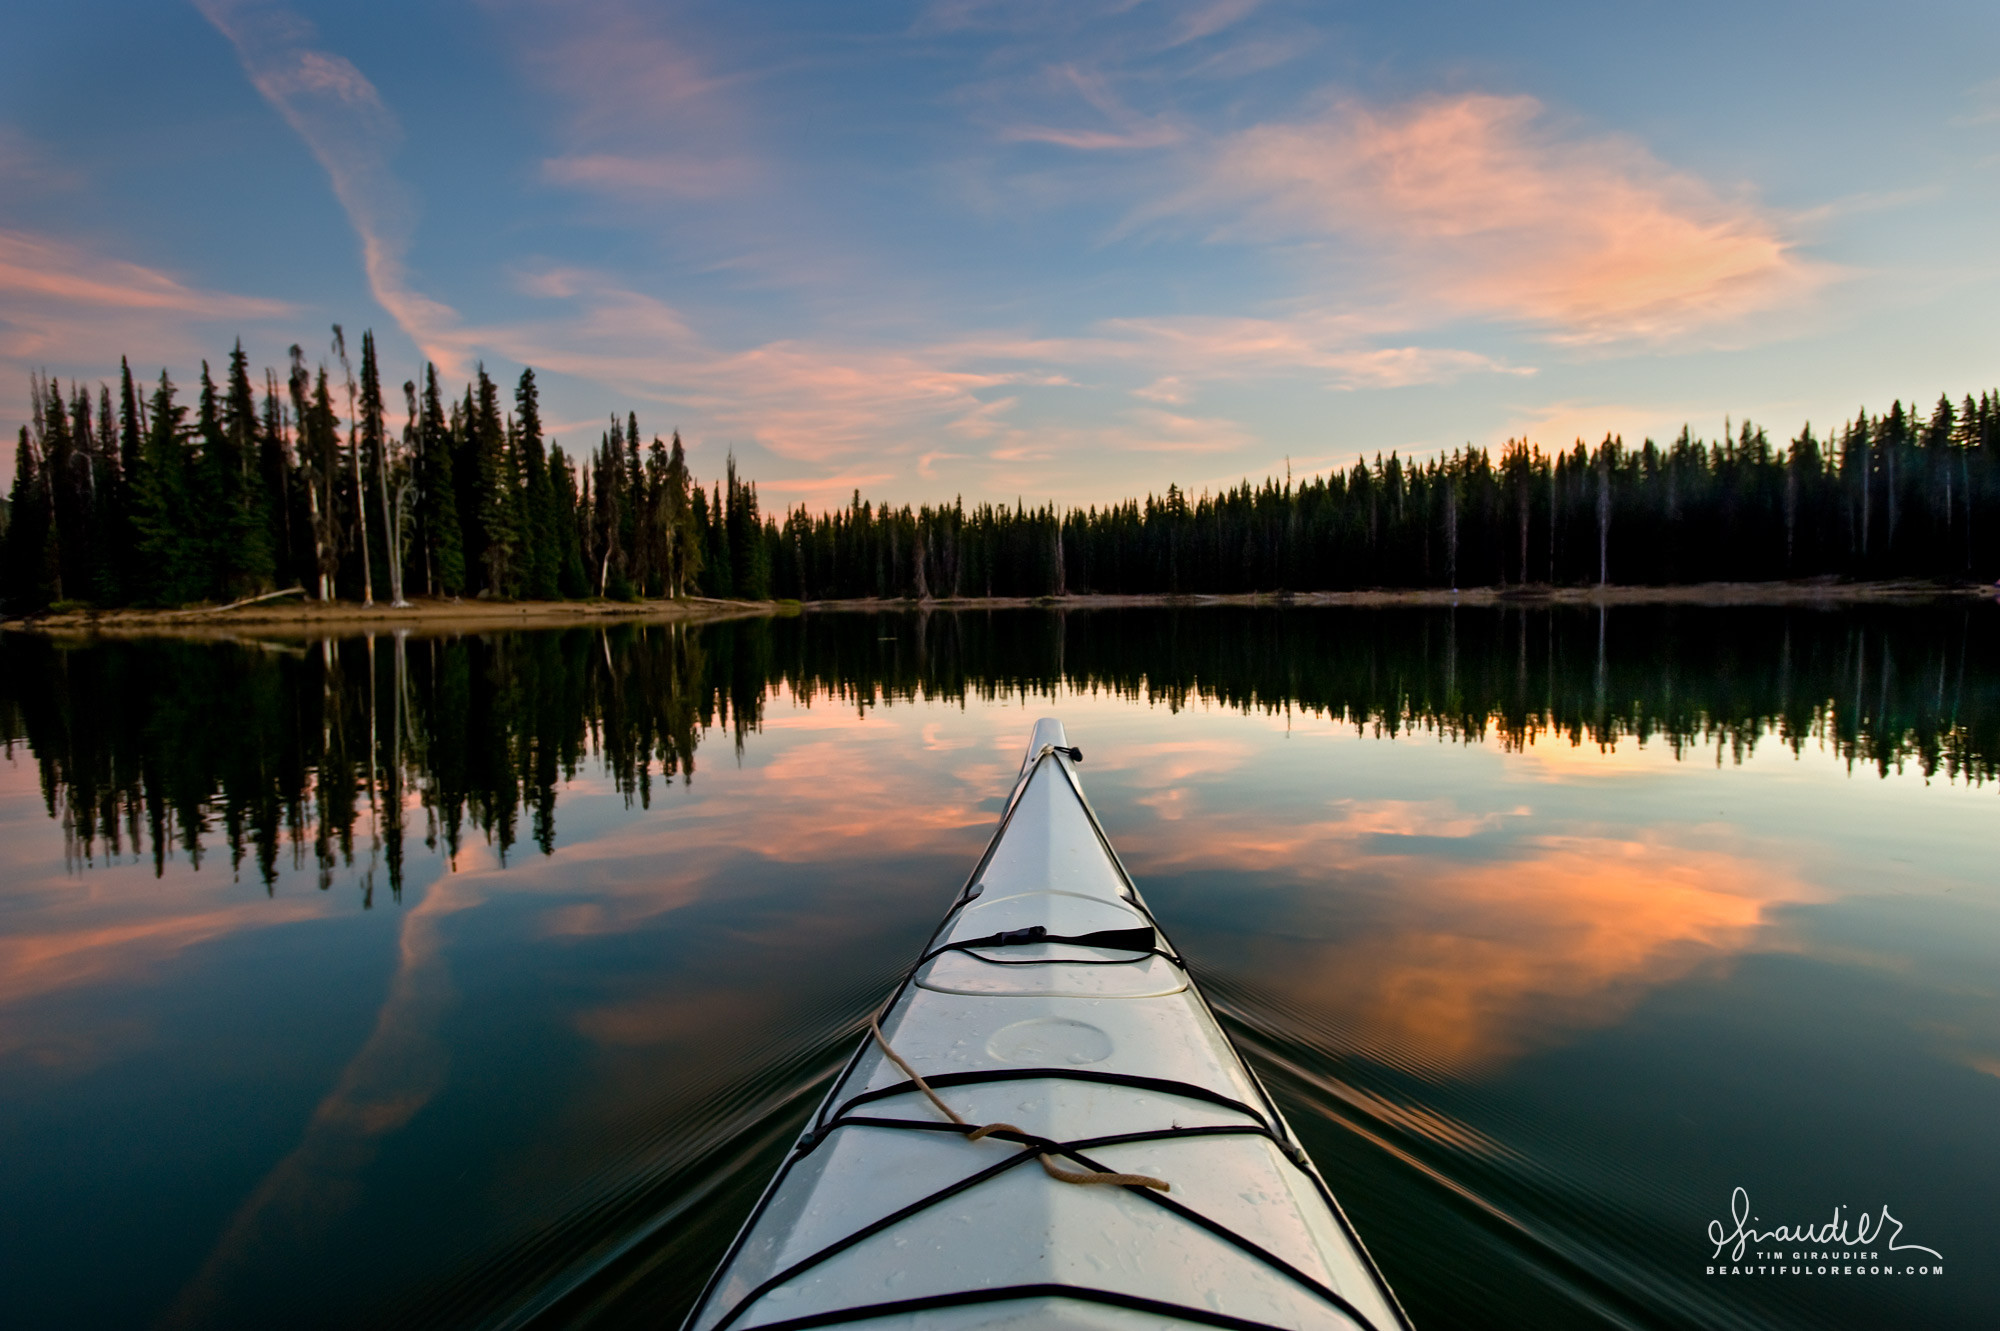 Sparks Lake kayak paddle at dusk. Cascade Lakes Highway, Deschutes National Forest, Central Oregon Cascades outdoors recreation vacation.